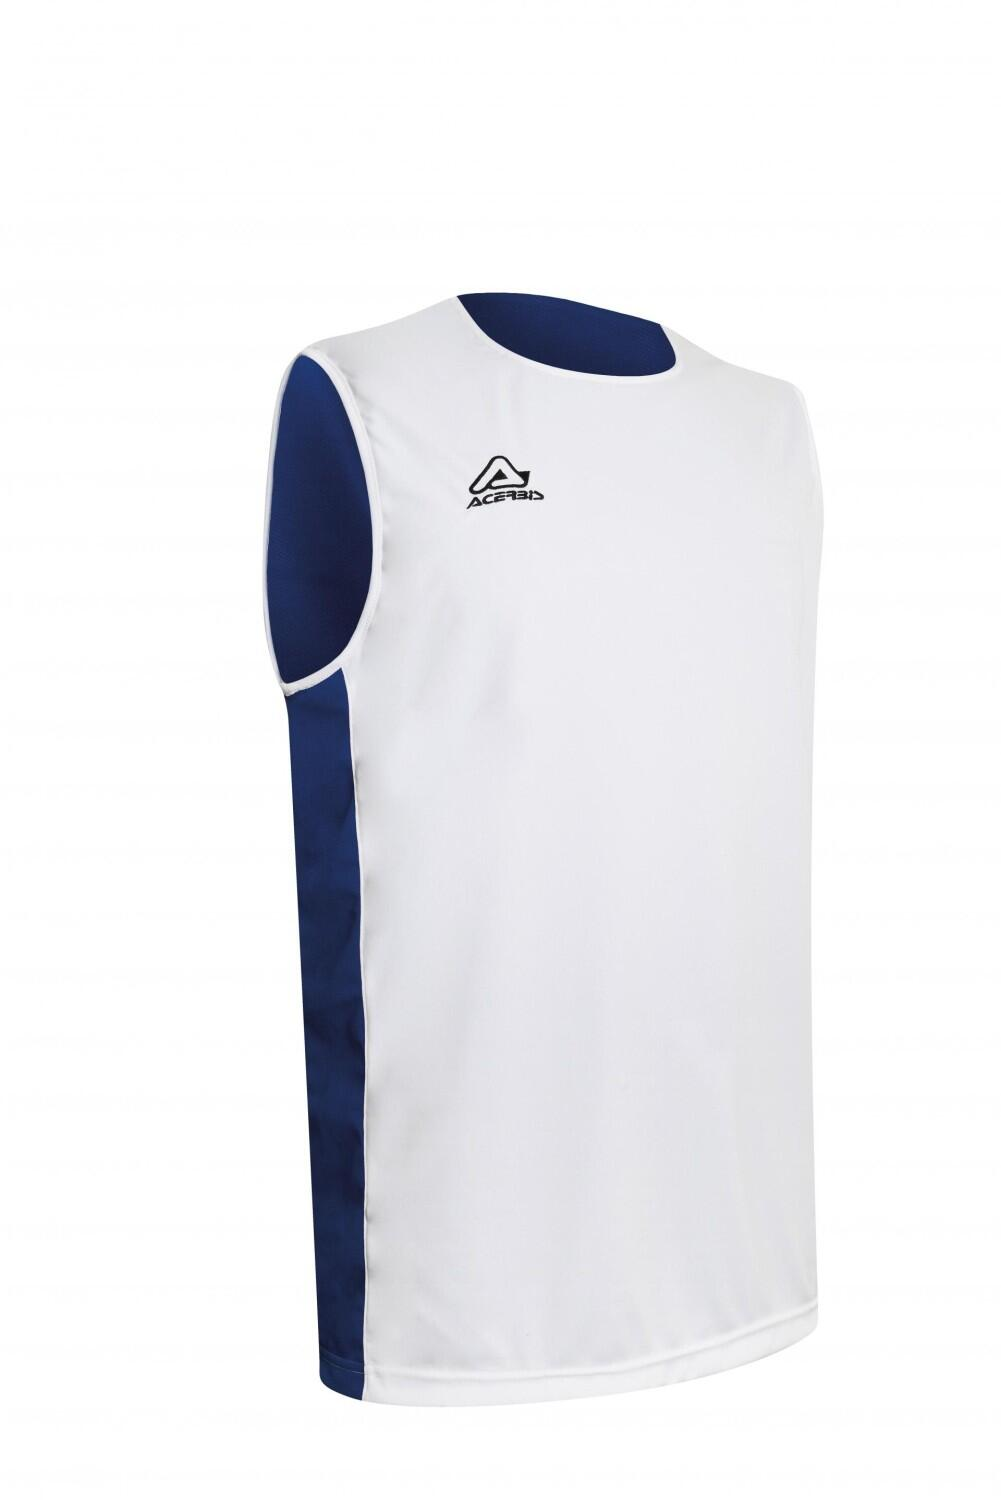 Basketball Wende Trikot Larry  v. Acerbis , weiß - royal, 4XS-4XL